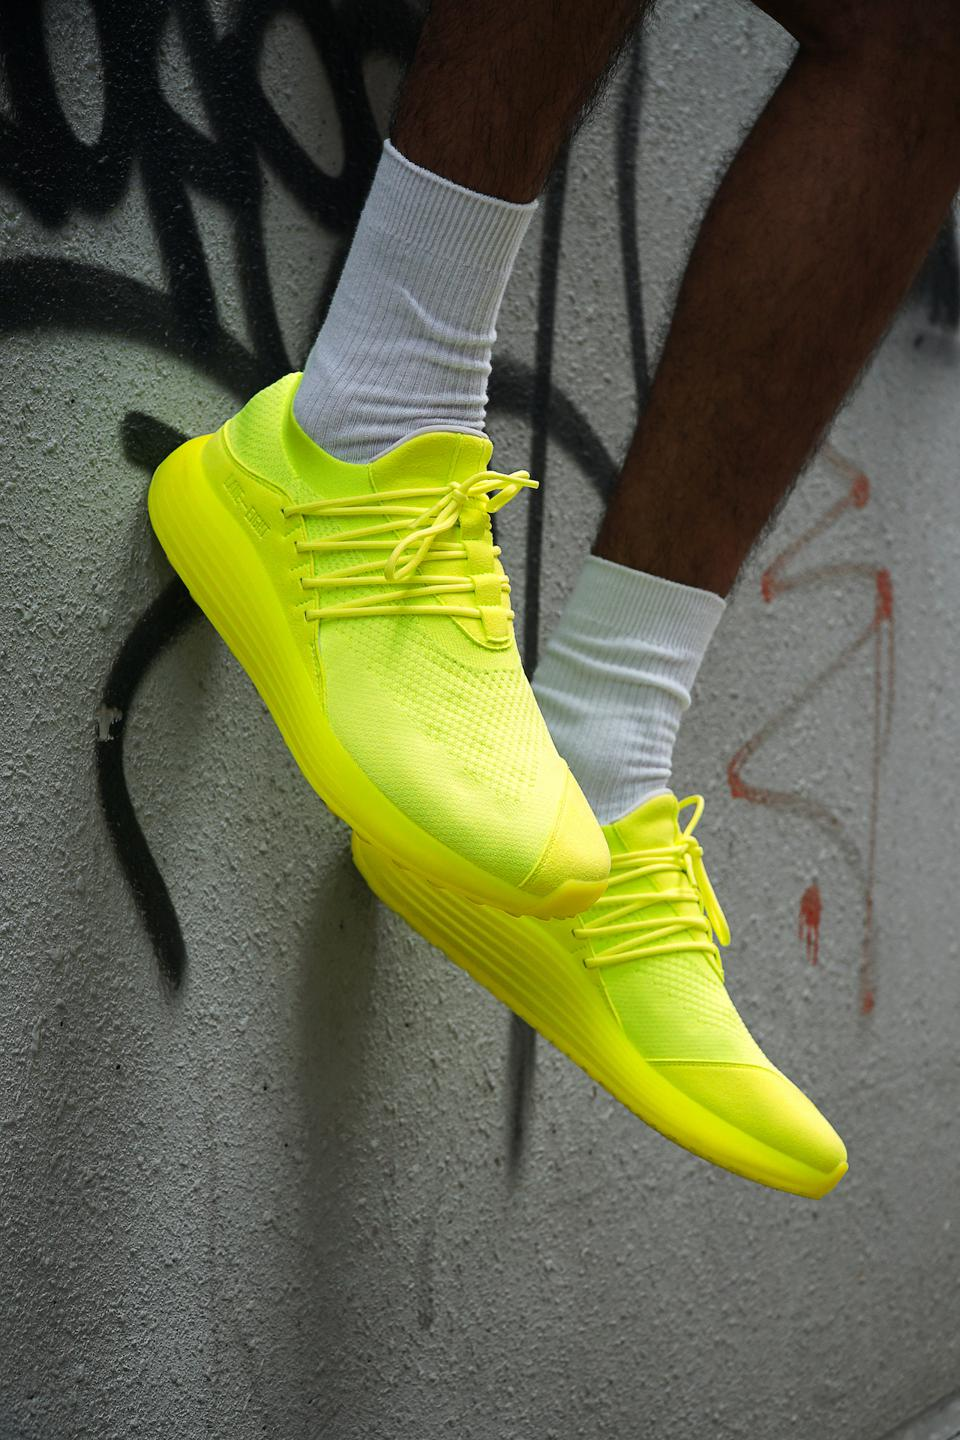 The new neon yellow composed of microfiber, recycled polyester from 11 plastic bottles and algae-based midsole.